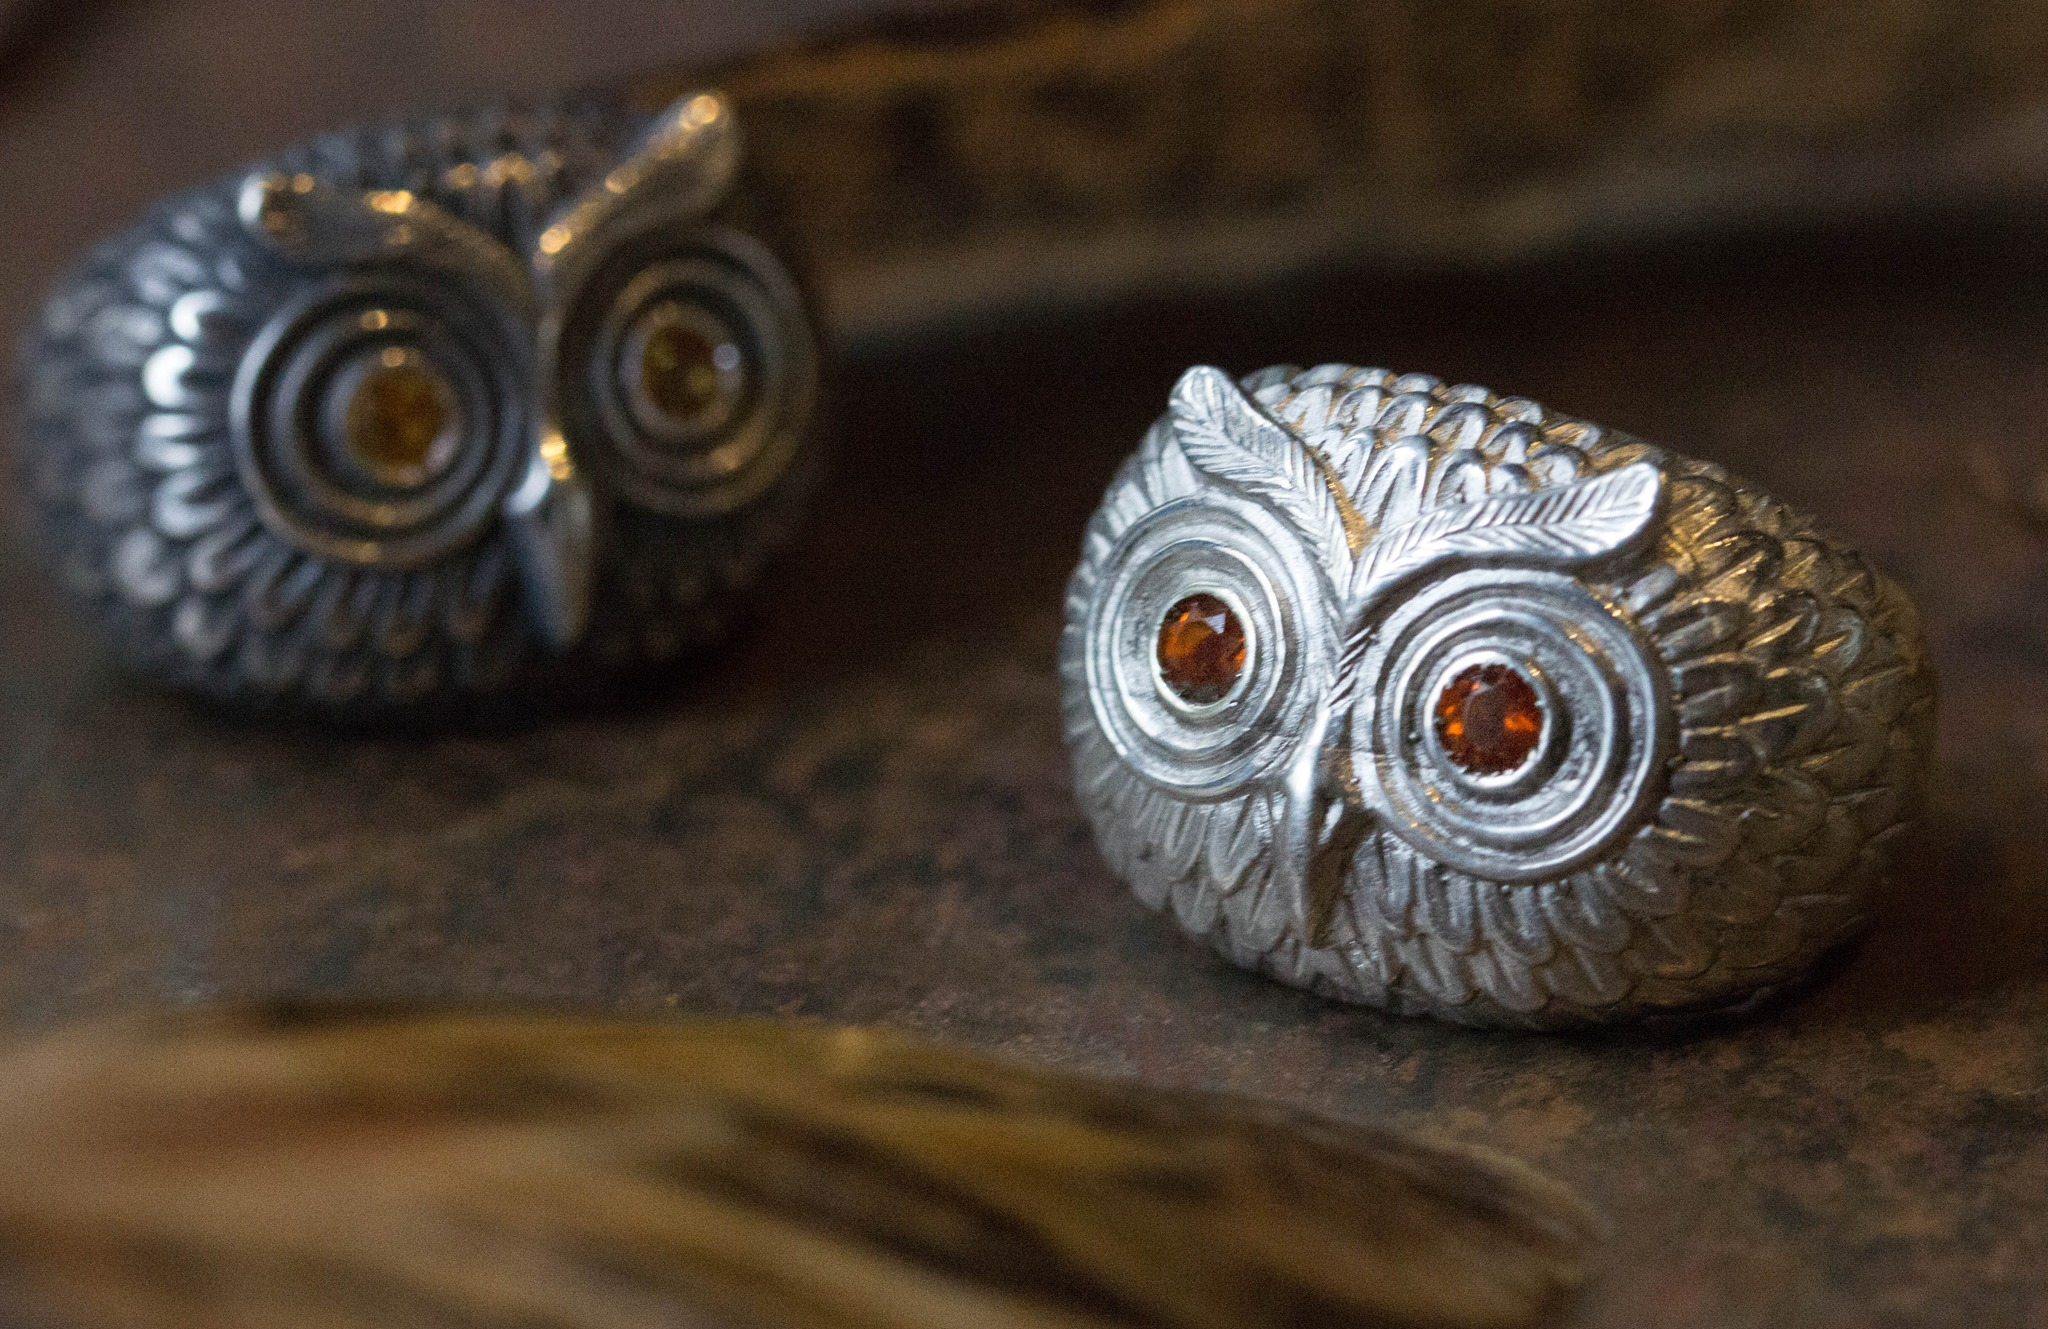 New silver & sapphire owl rings, as worn by Catherine herself